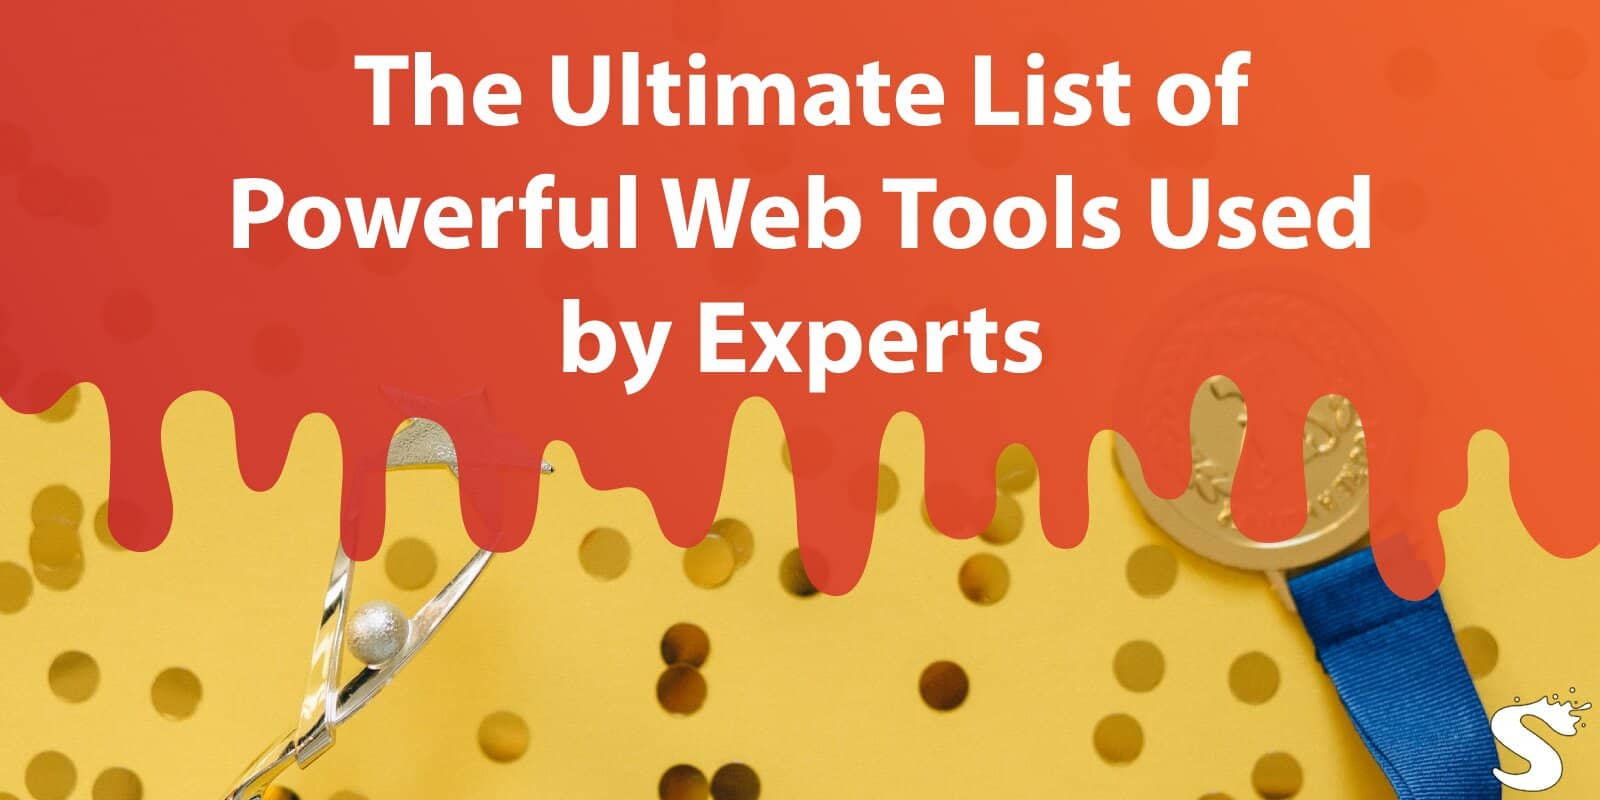 The Ultimate List of Powerful Web Tools Used by Experts